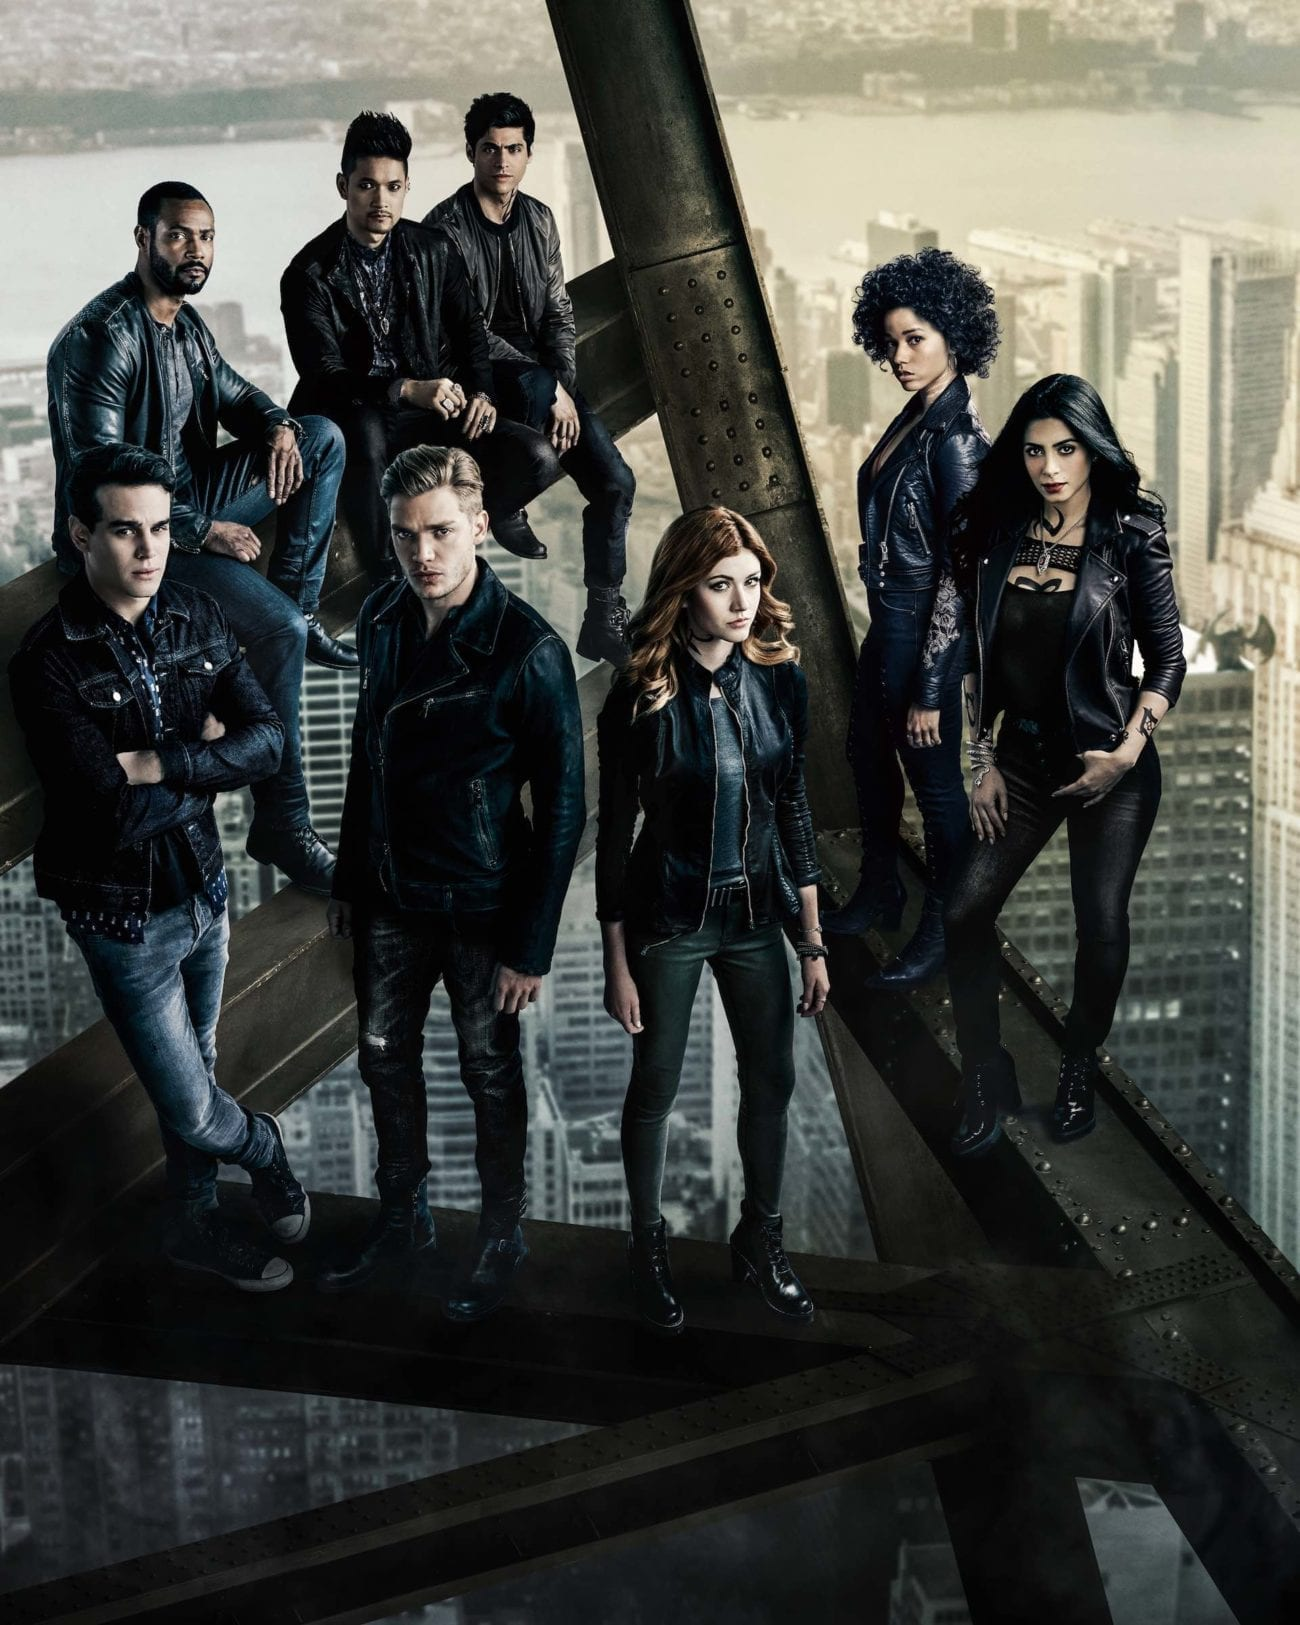 We've been talking a lot about why 'Shadowhunters' deserves to continue. Want to #SaveShadowhunters? Let's make it happen, Shadowfam – here's how.